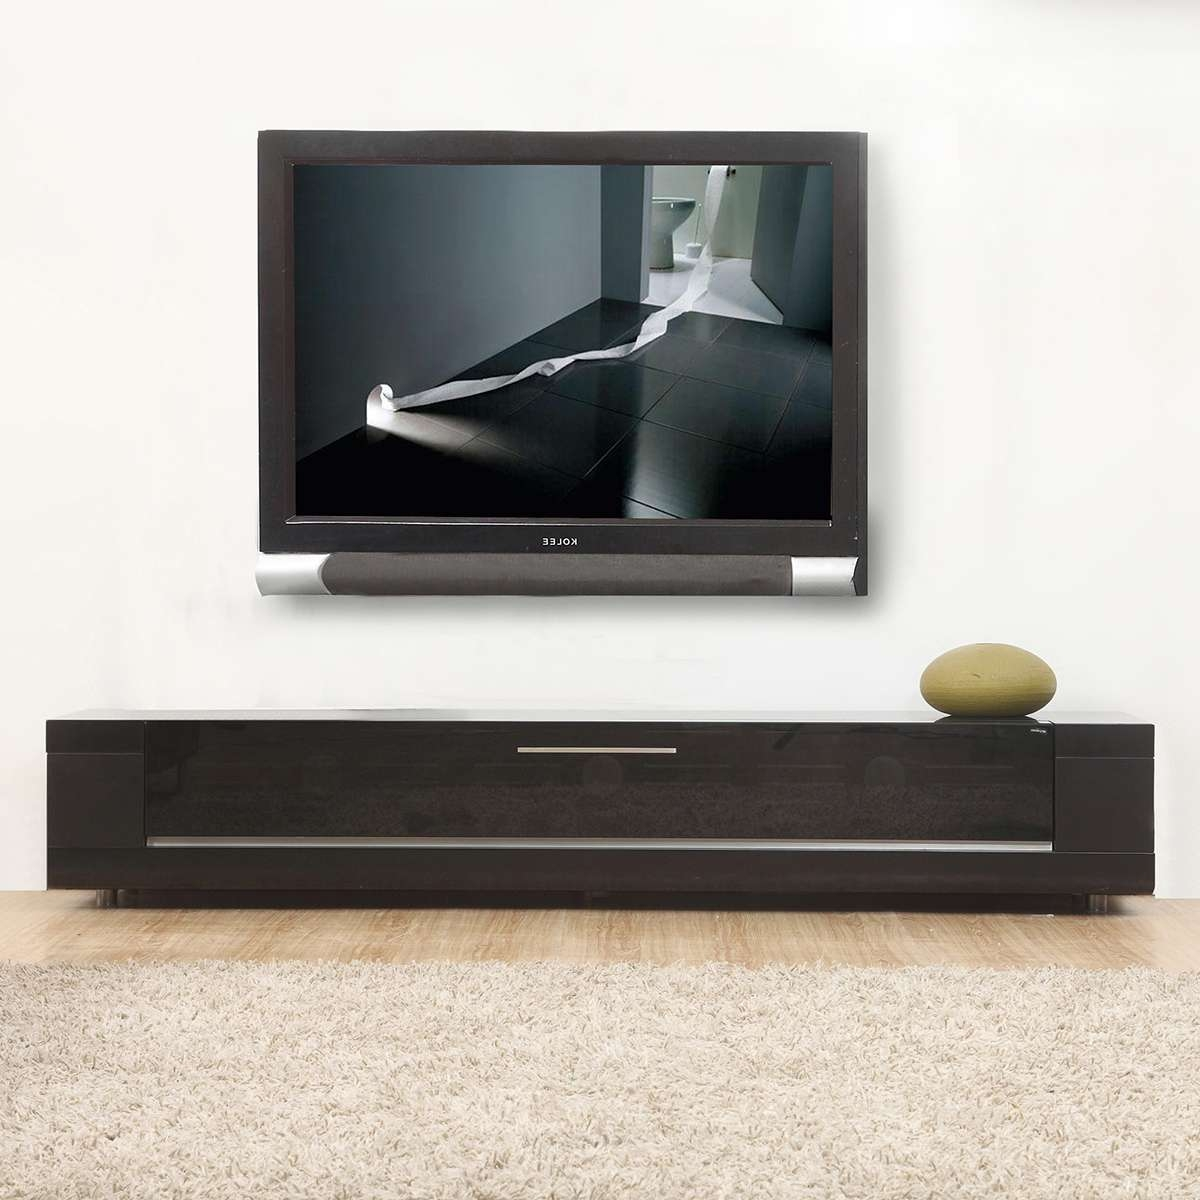 B Modern Minimalist Design Contemporary Tv Stands & Furniture At Within Contemporary Tv Stands (View 12 of 15)